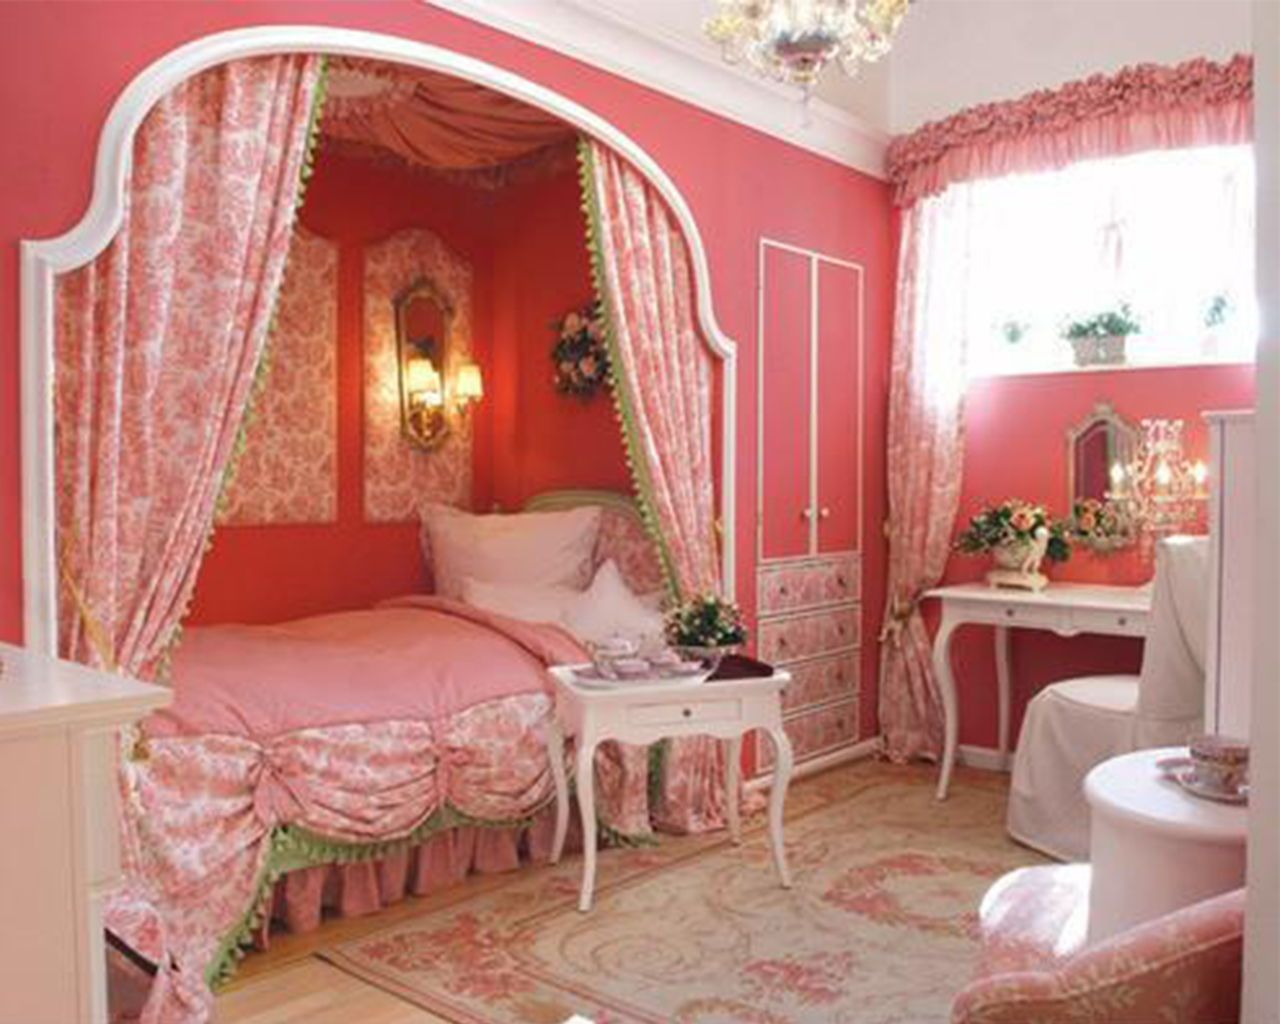 Resultado de imagen para teenage girls room decoration